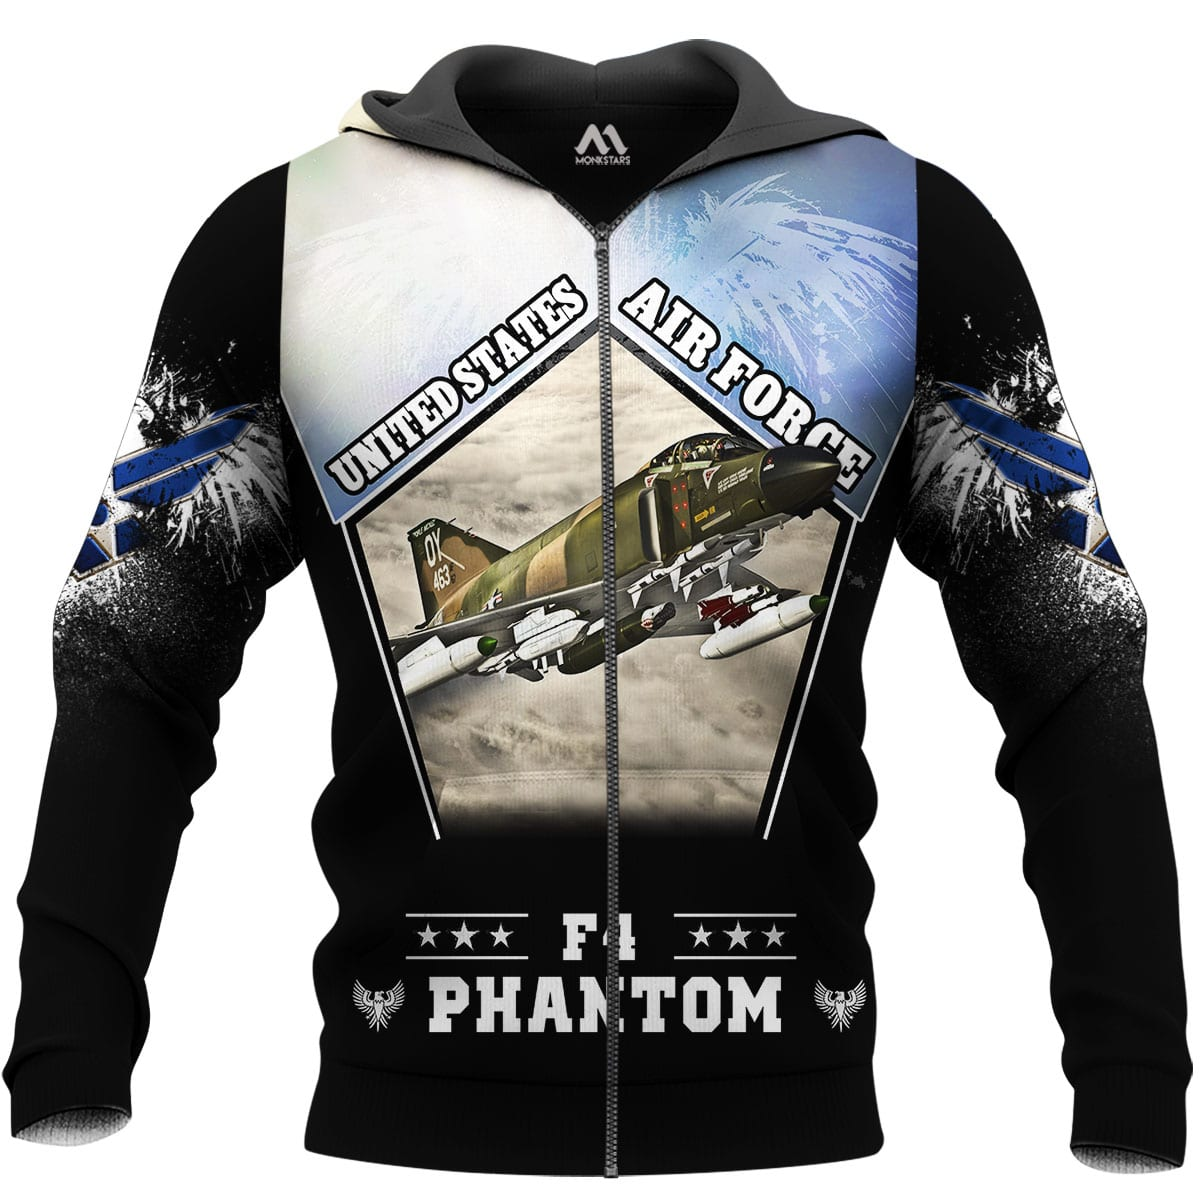 F4 Phantom 3D All Over Printed Shirts for Men and Women 9